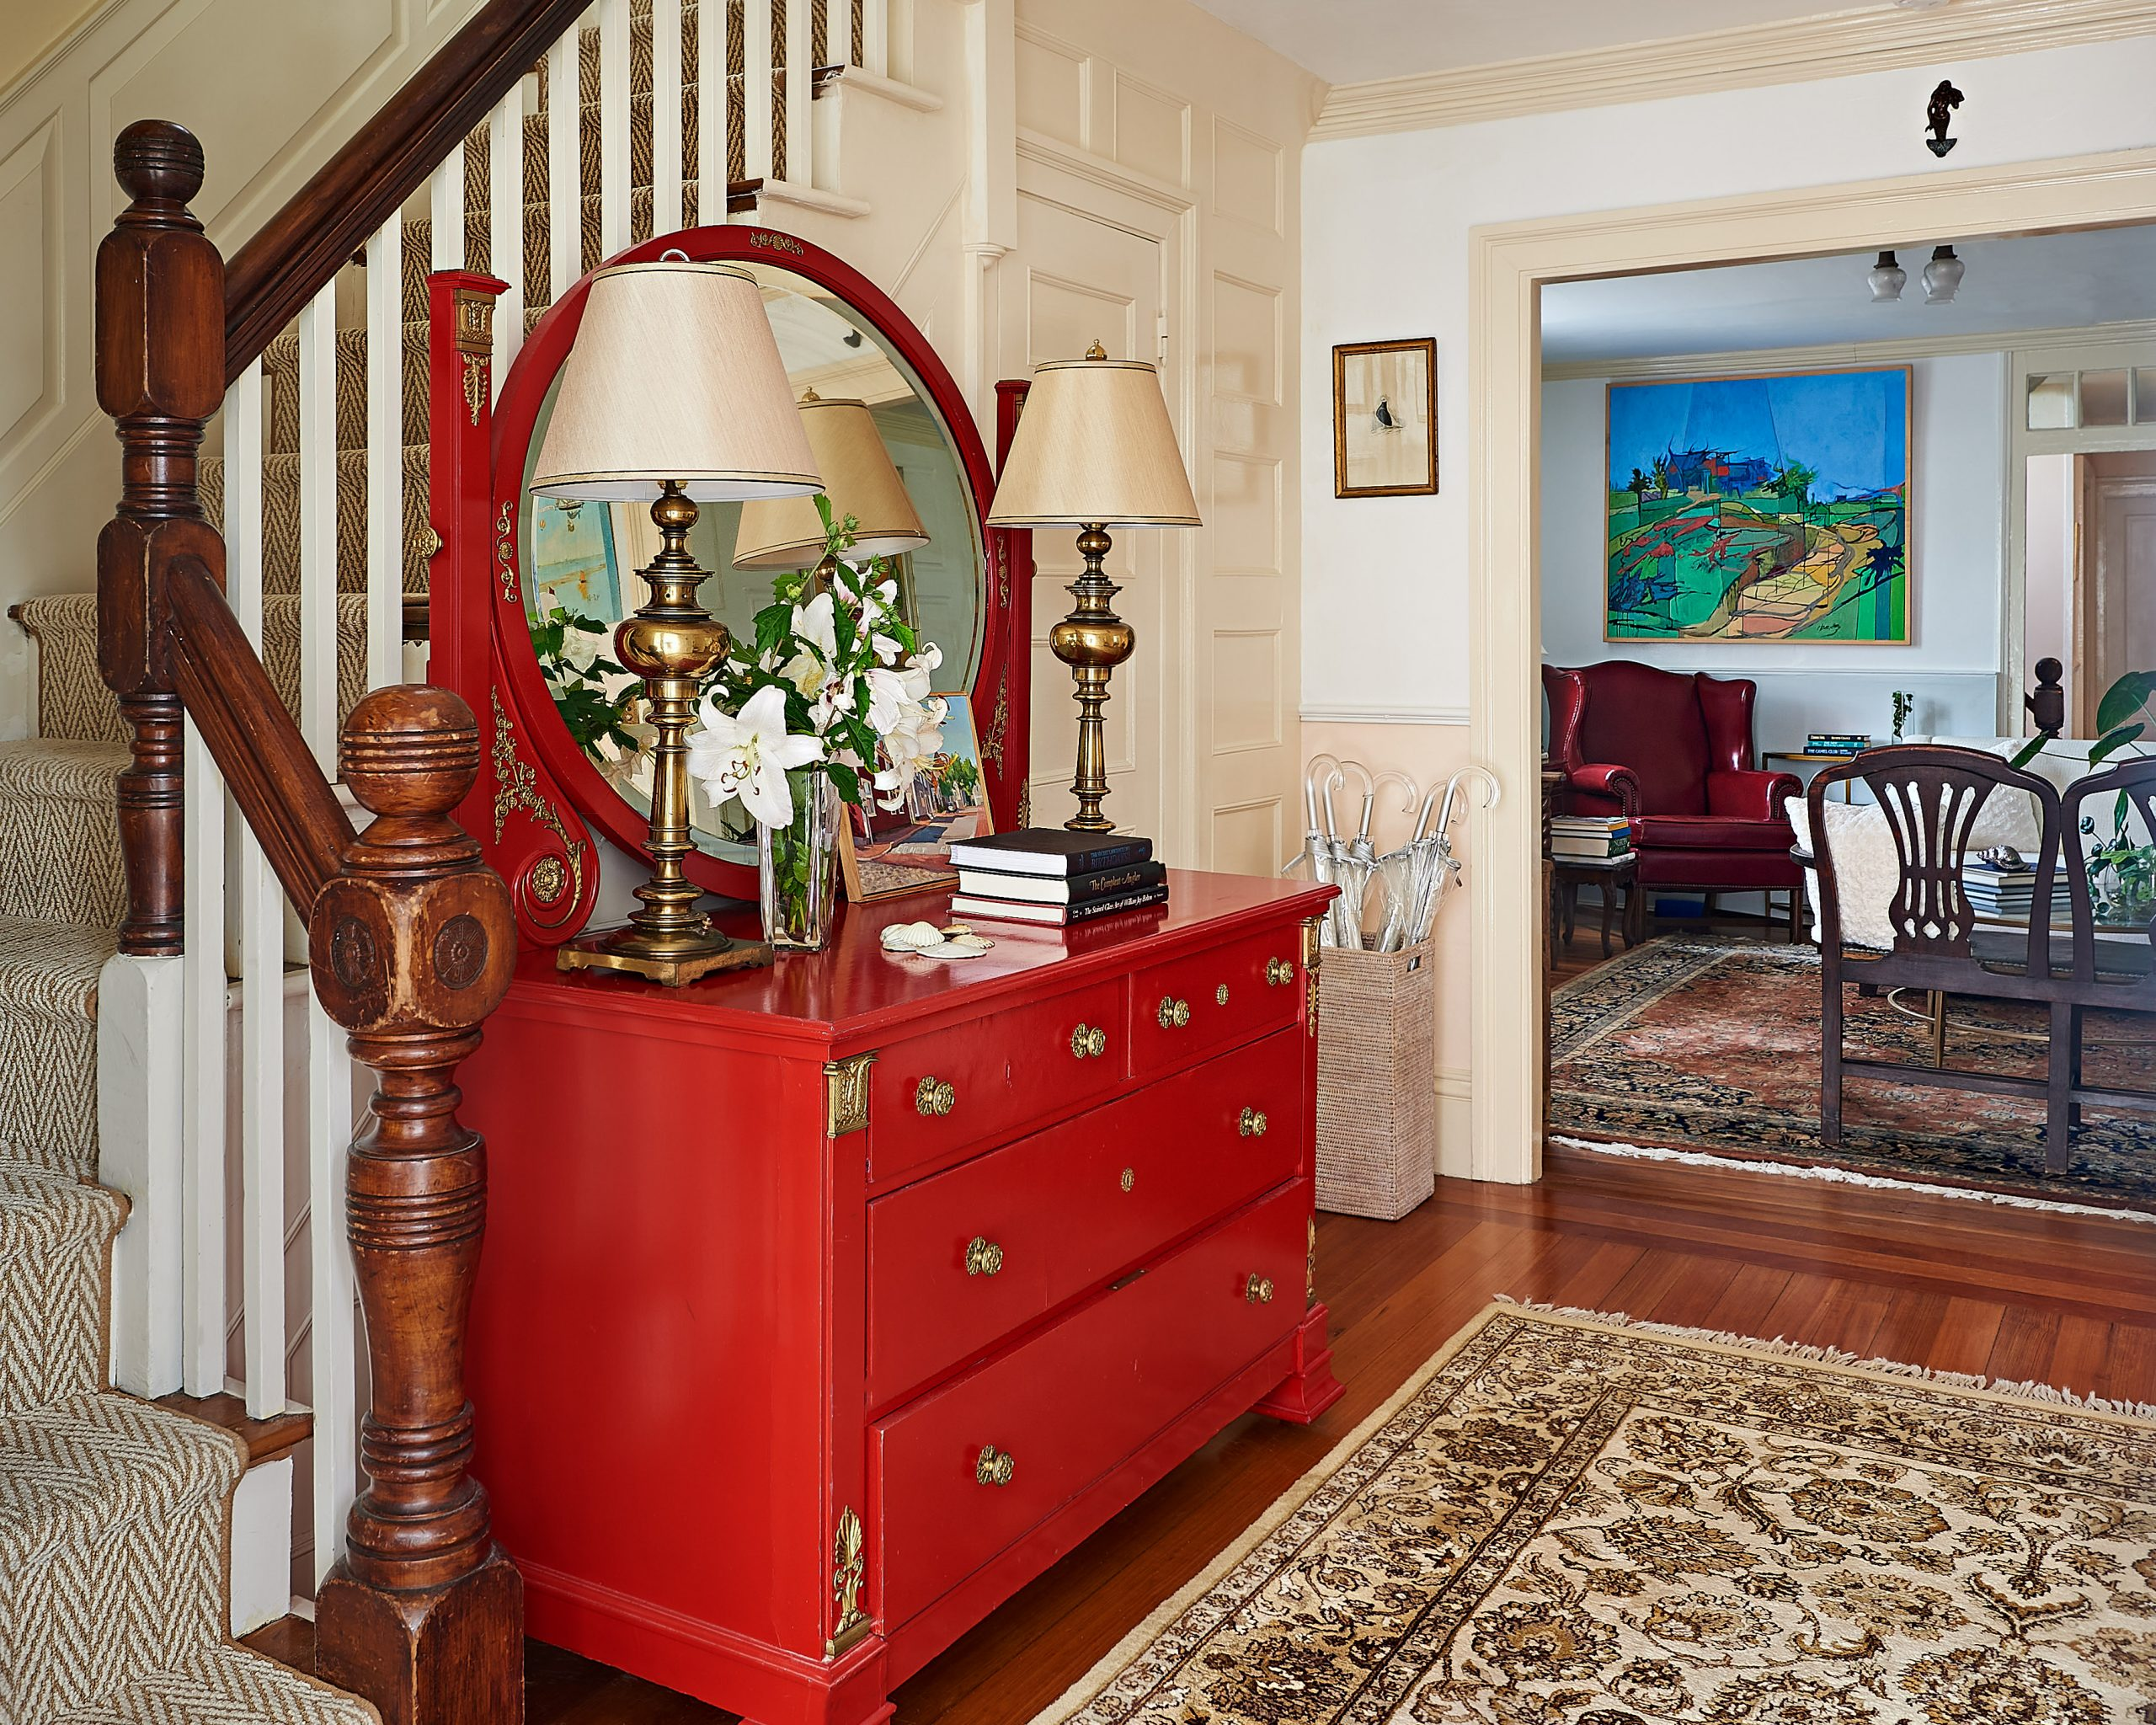 Red chest of drawers with a mirror by the stairs